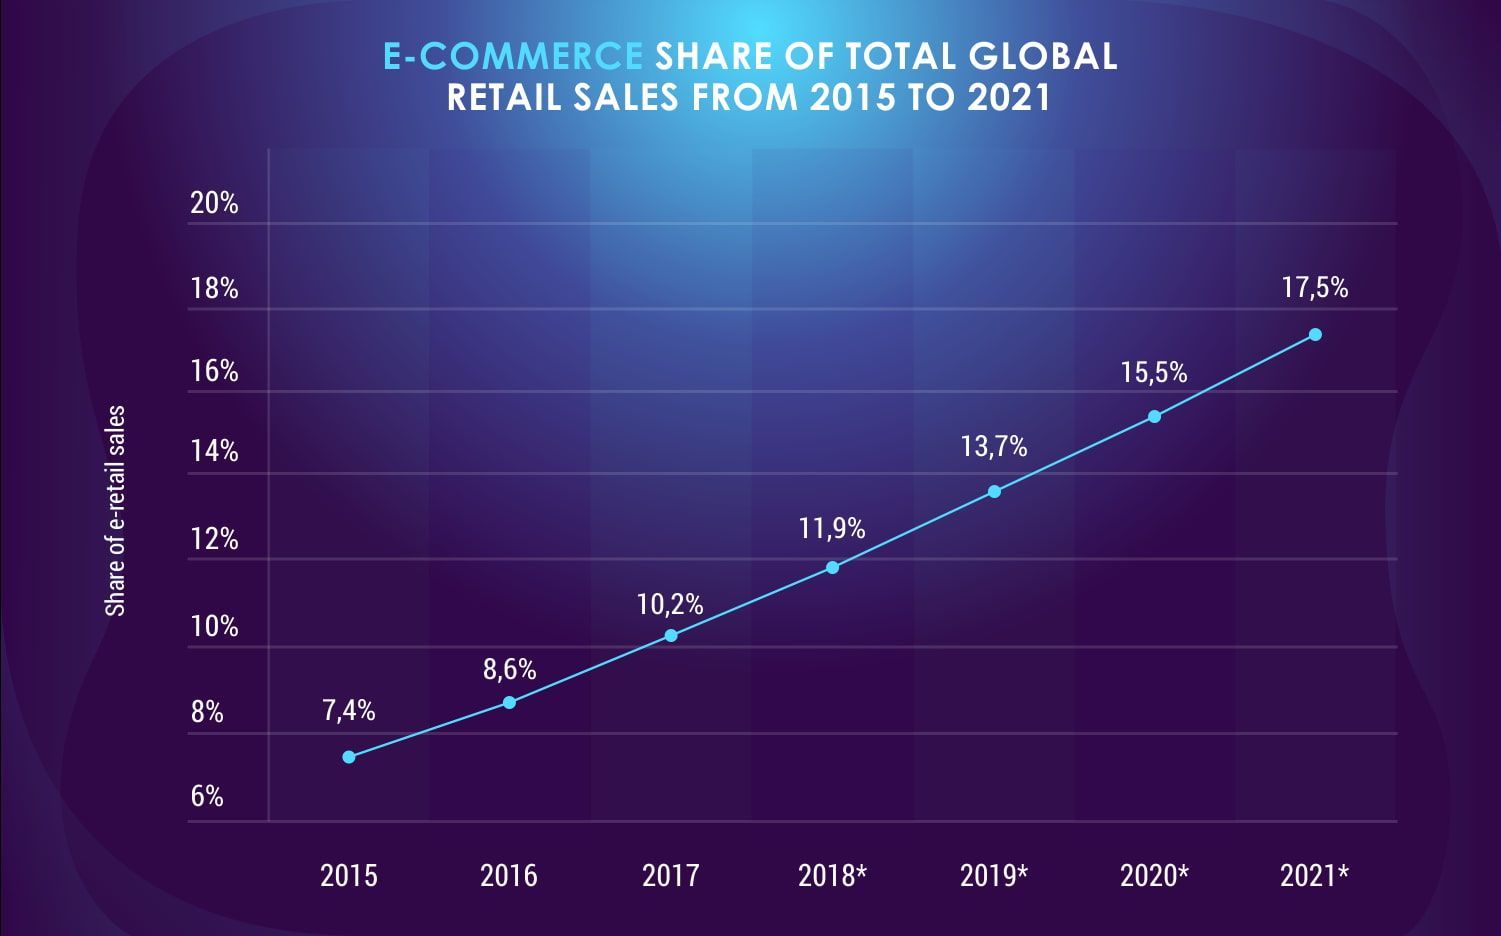 Retail-e-commerce-sales-as-a-percent-of-global-retail-sales-from-2015-to-2021